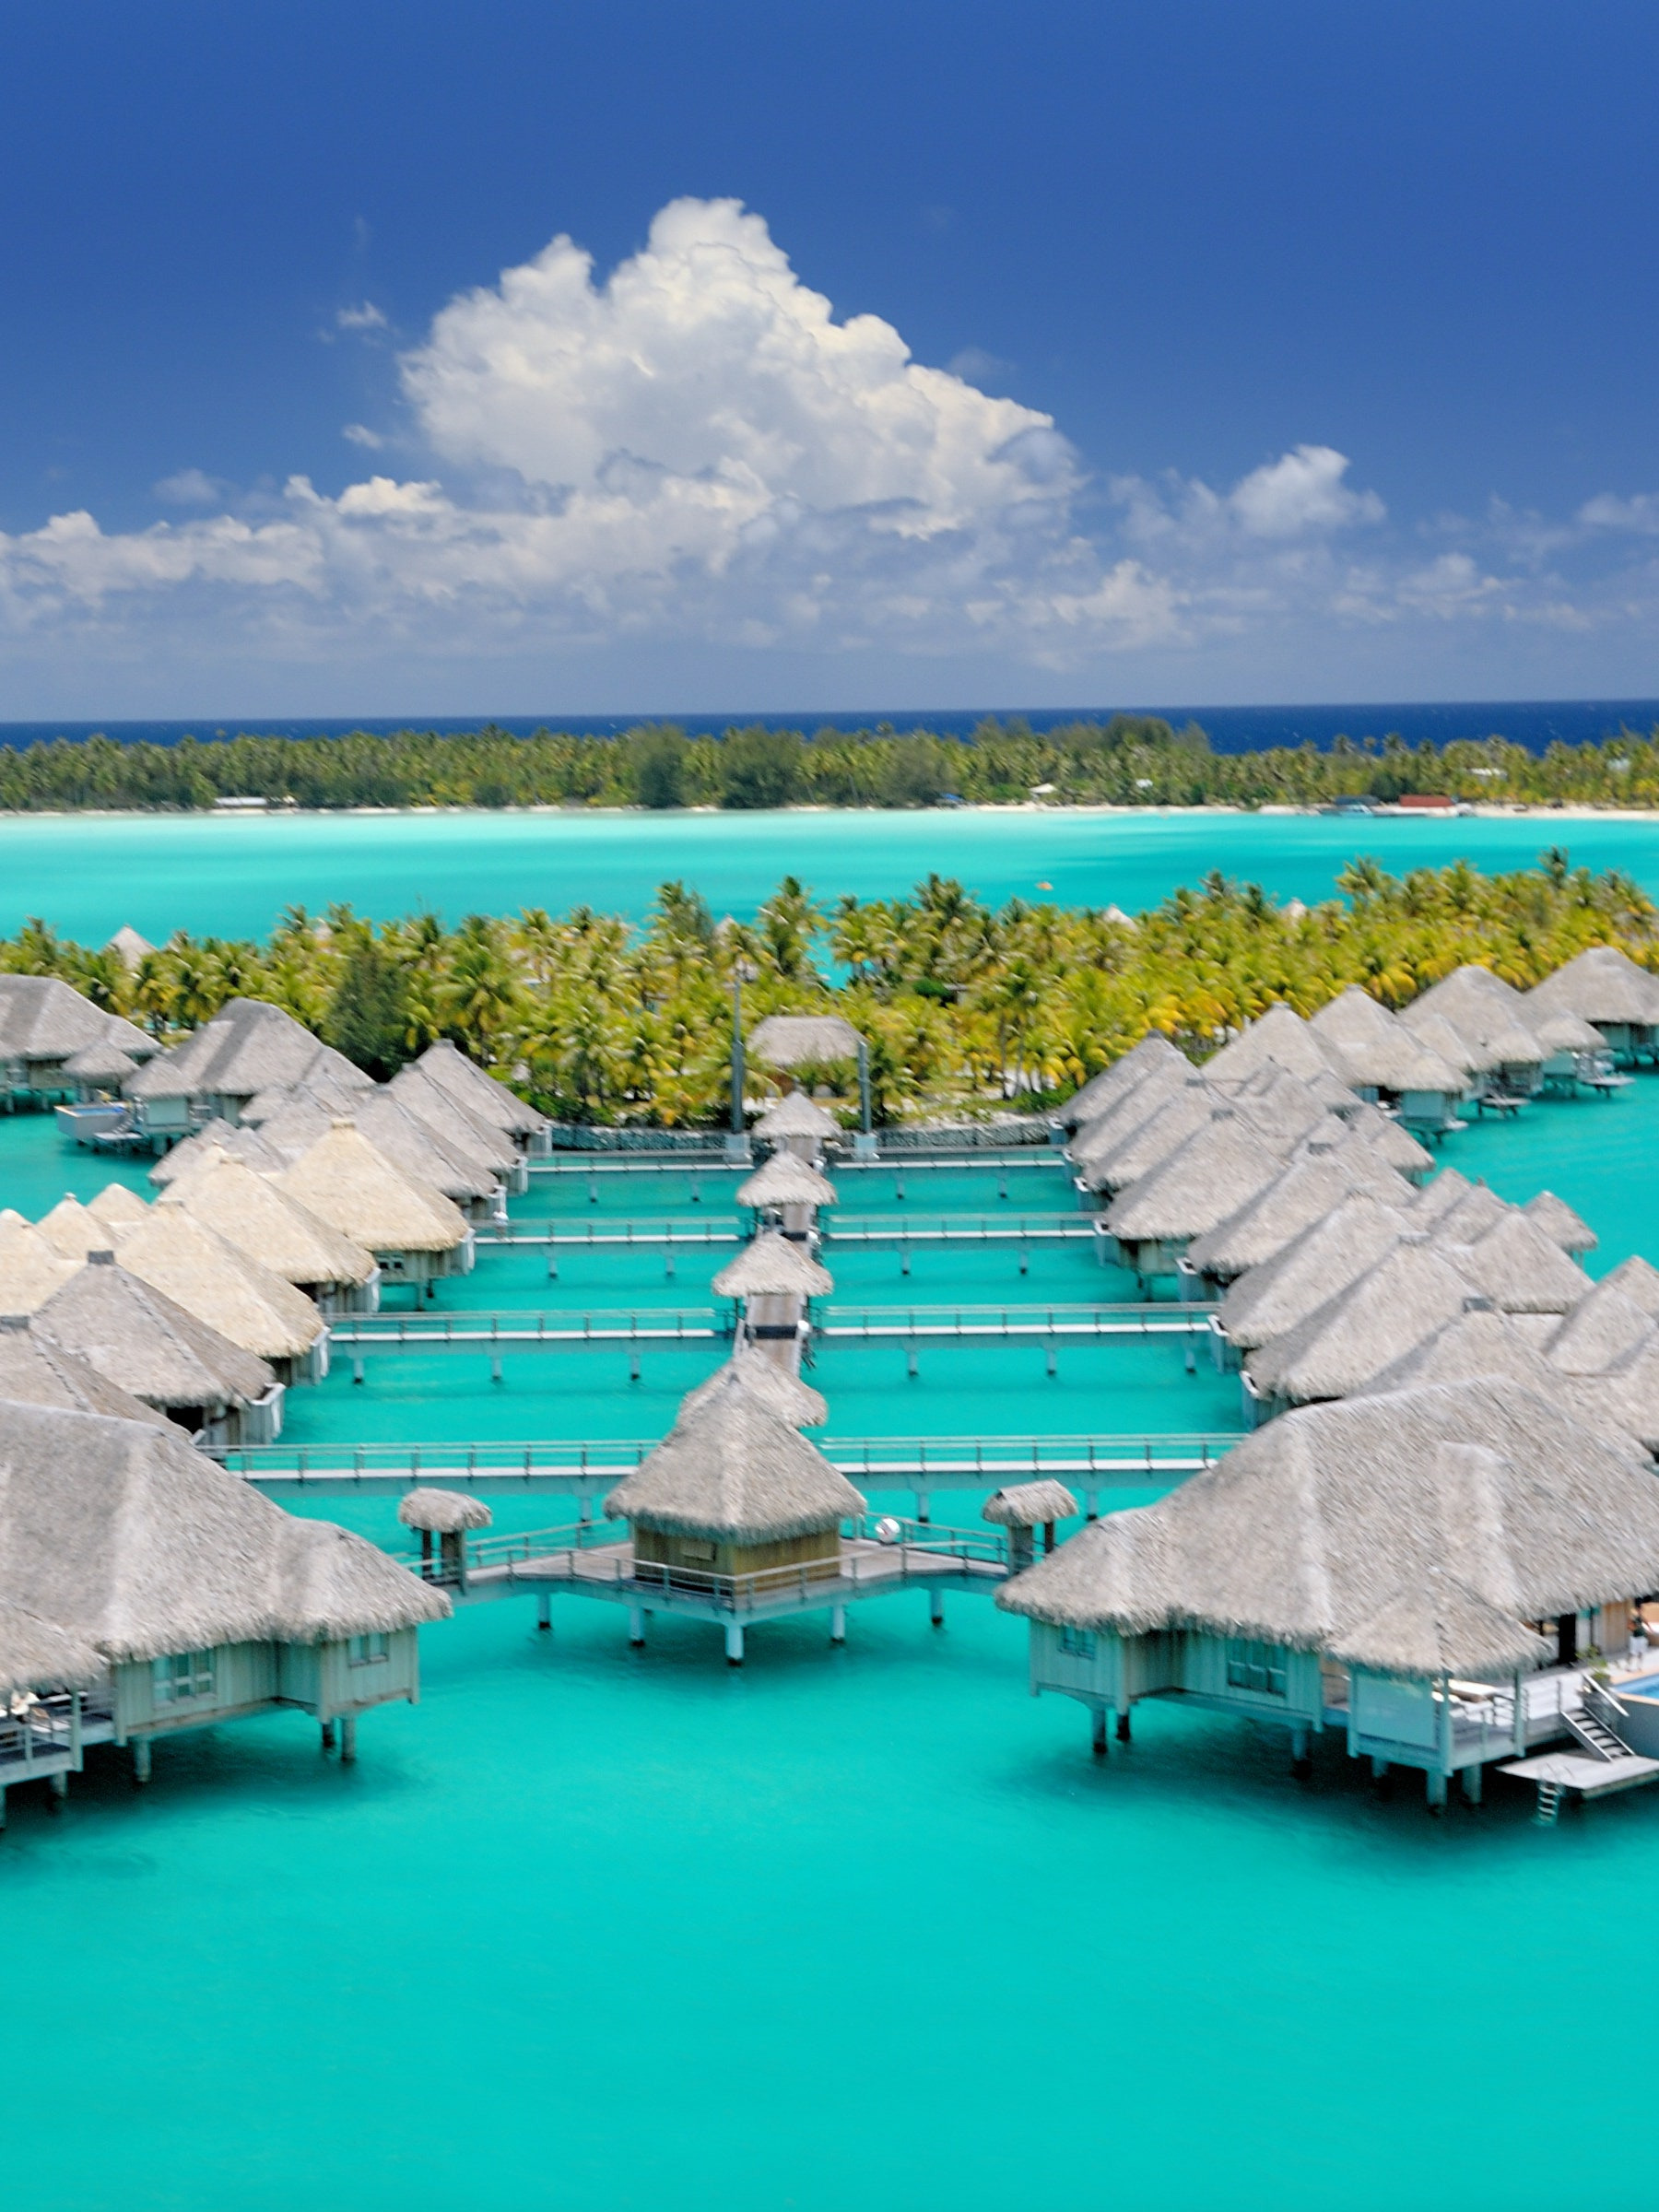 The Most Beautiful Bungalow In the World New the 11 Most Incredible Overwater Bungalows In the World